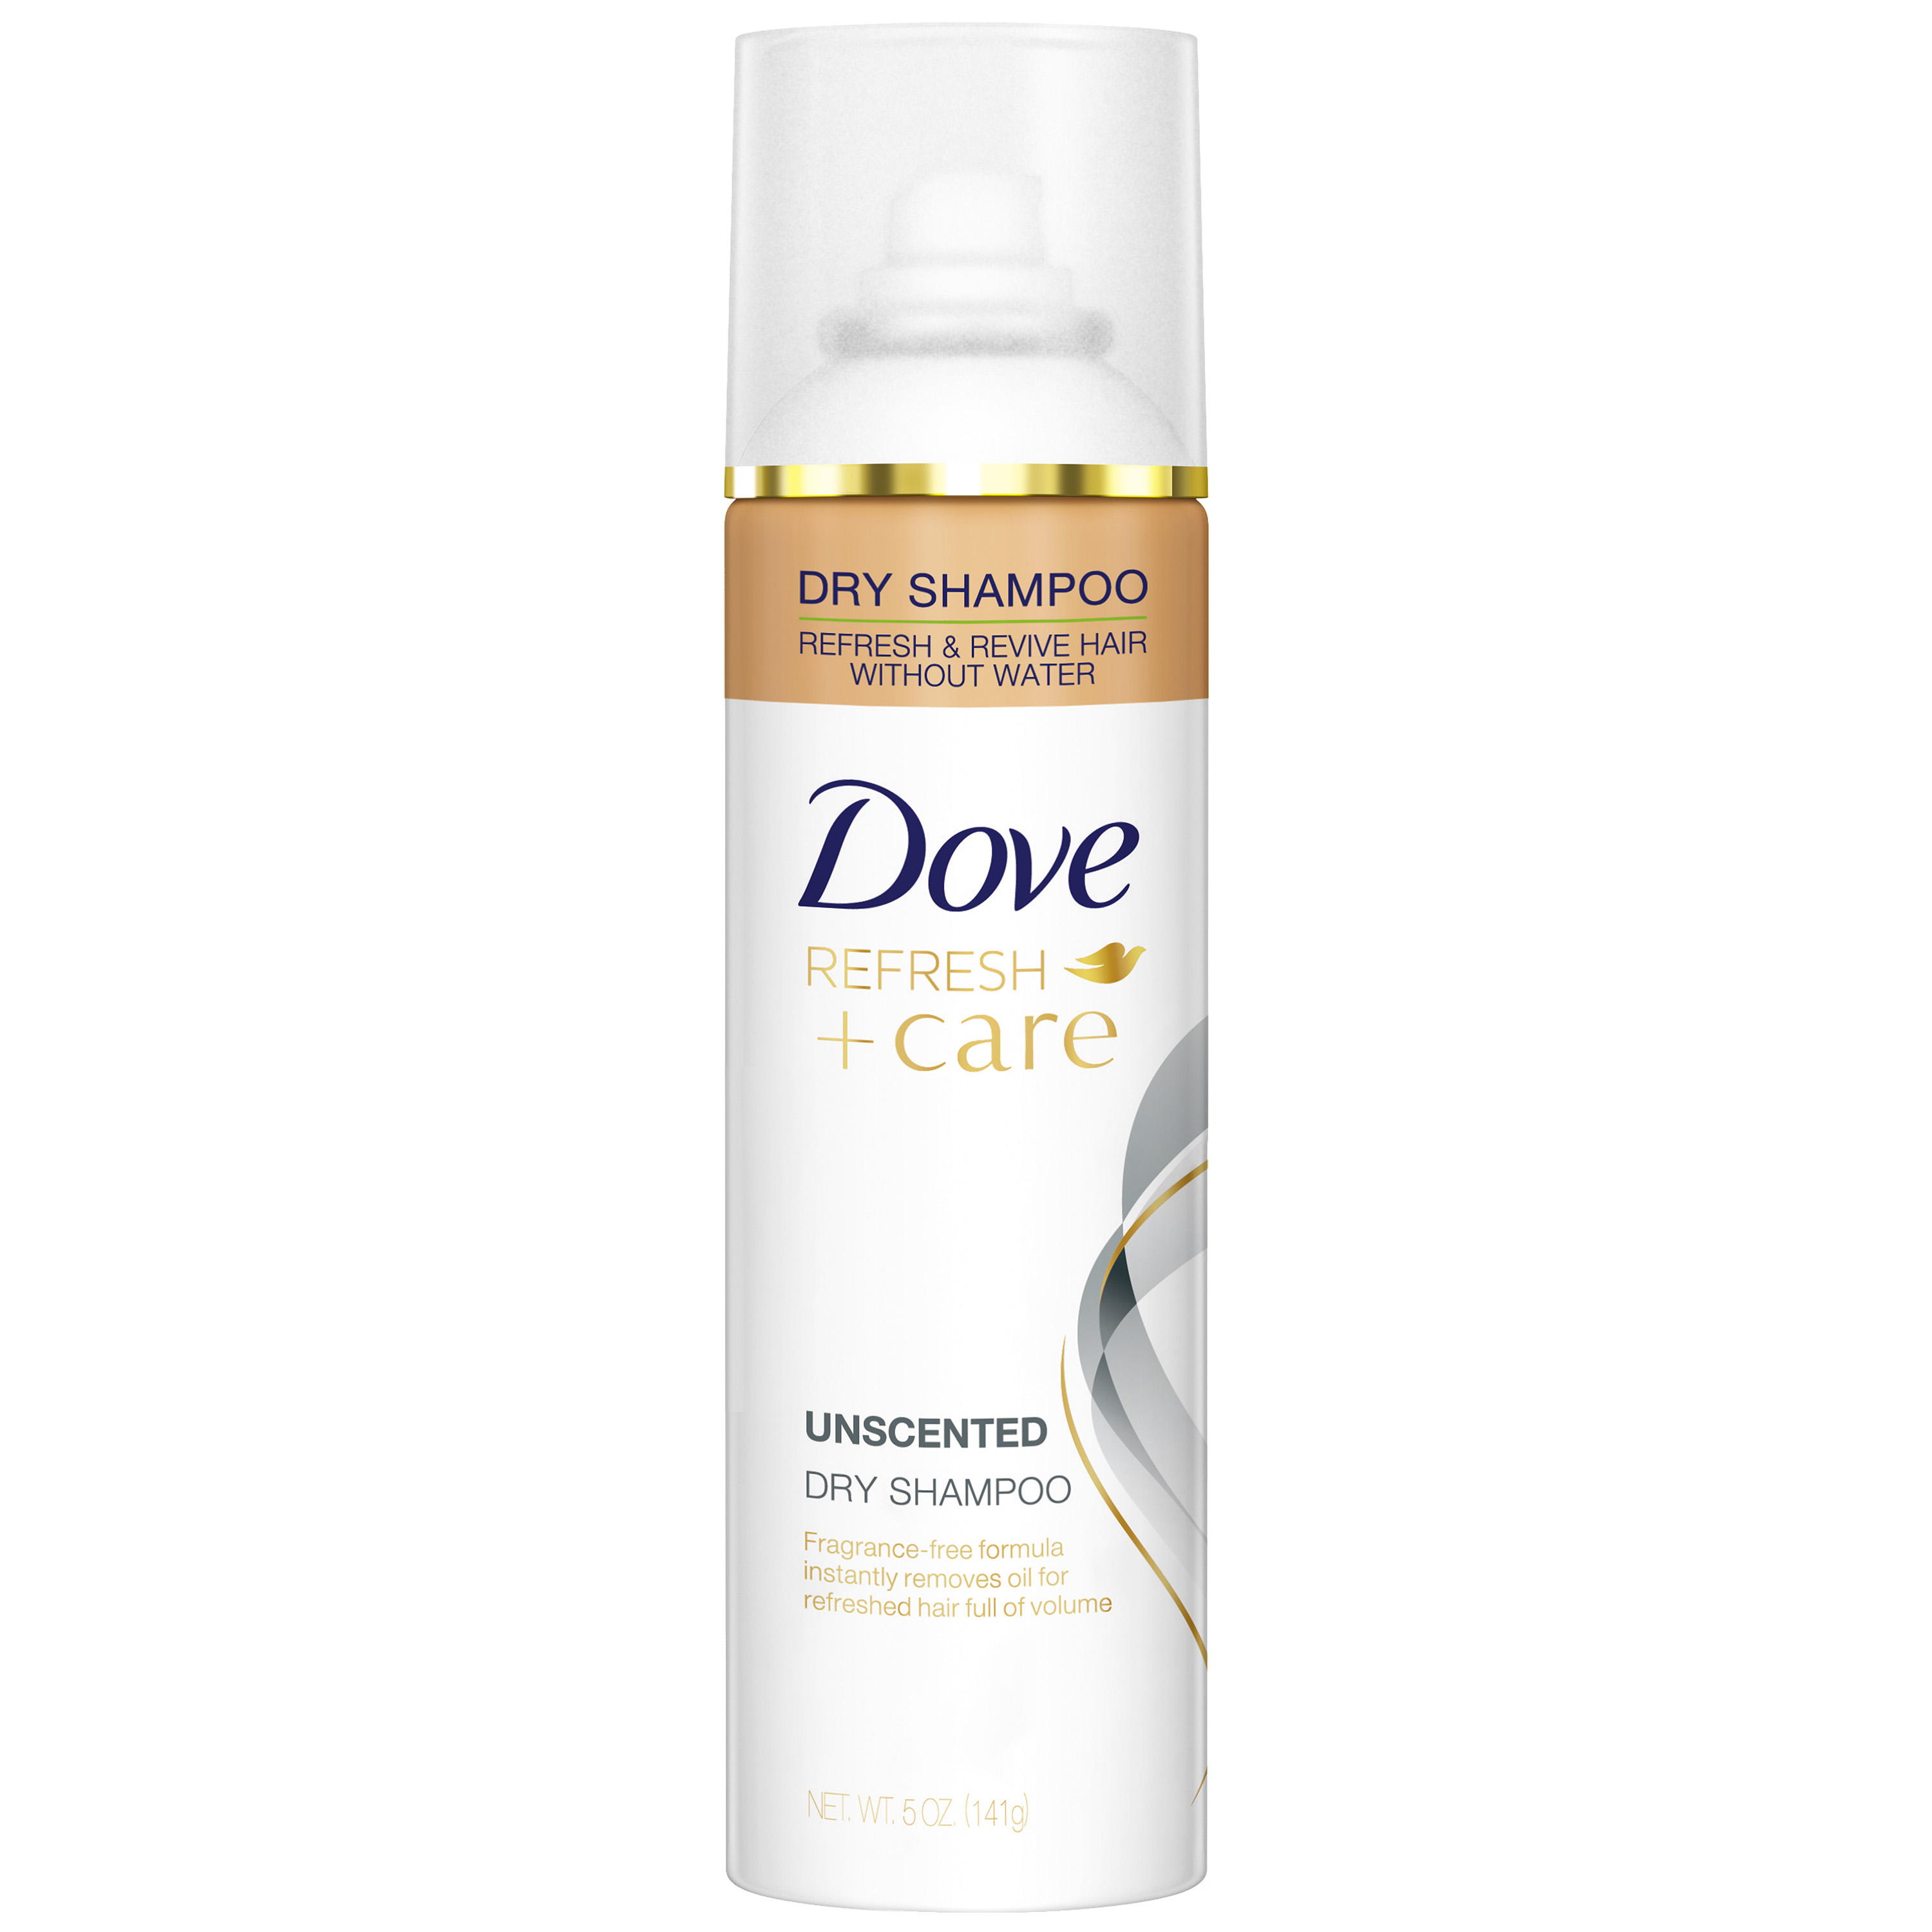 Dove Refresh + Care Unscented Dry Shampoo, 5 oz